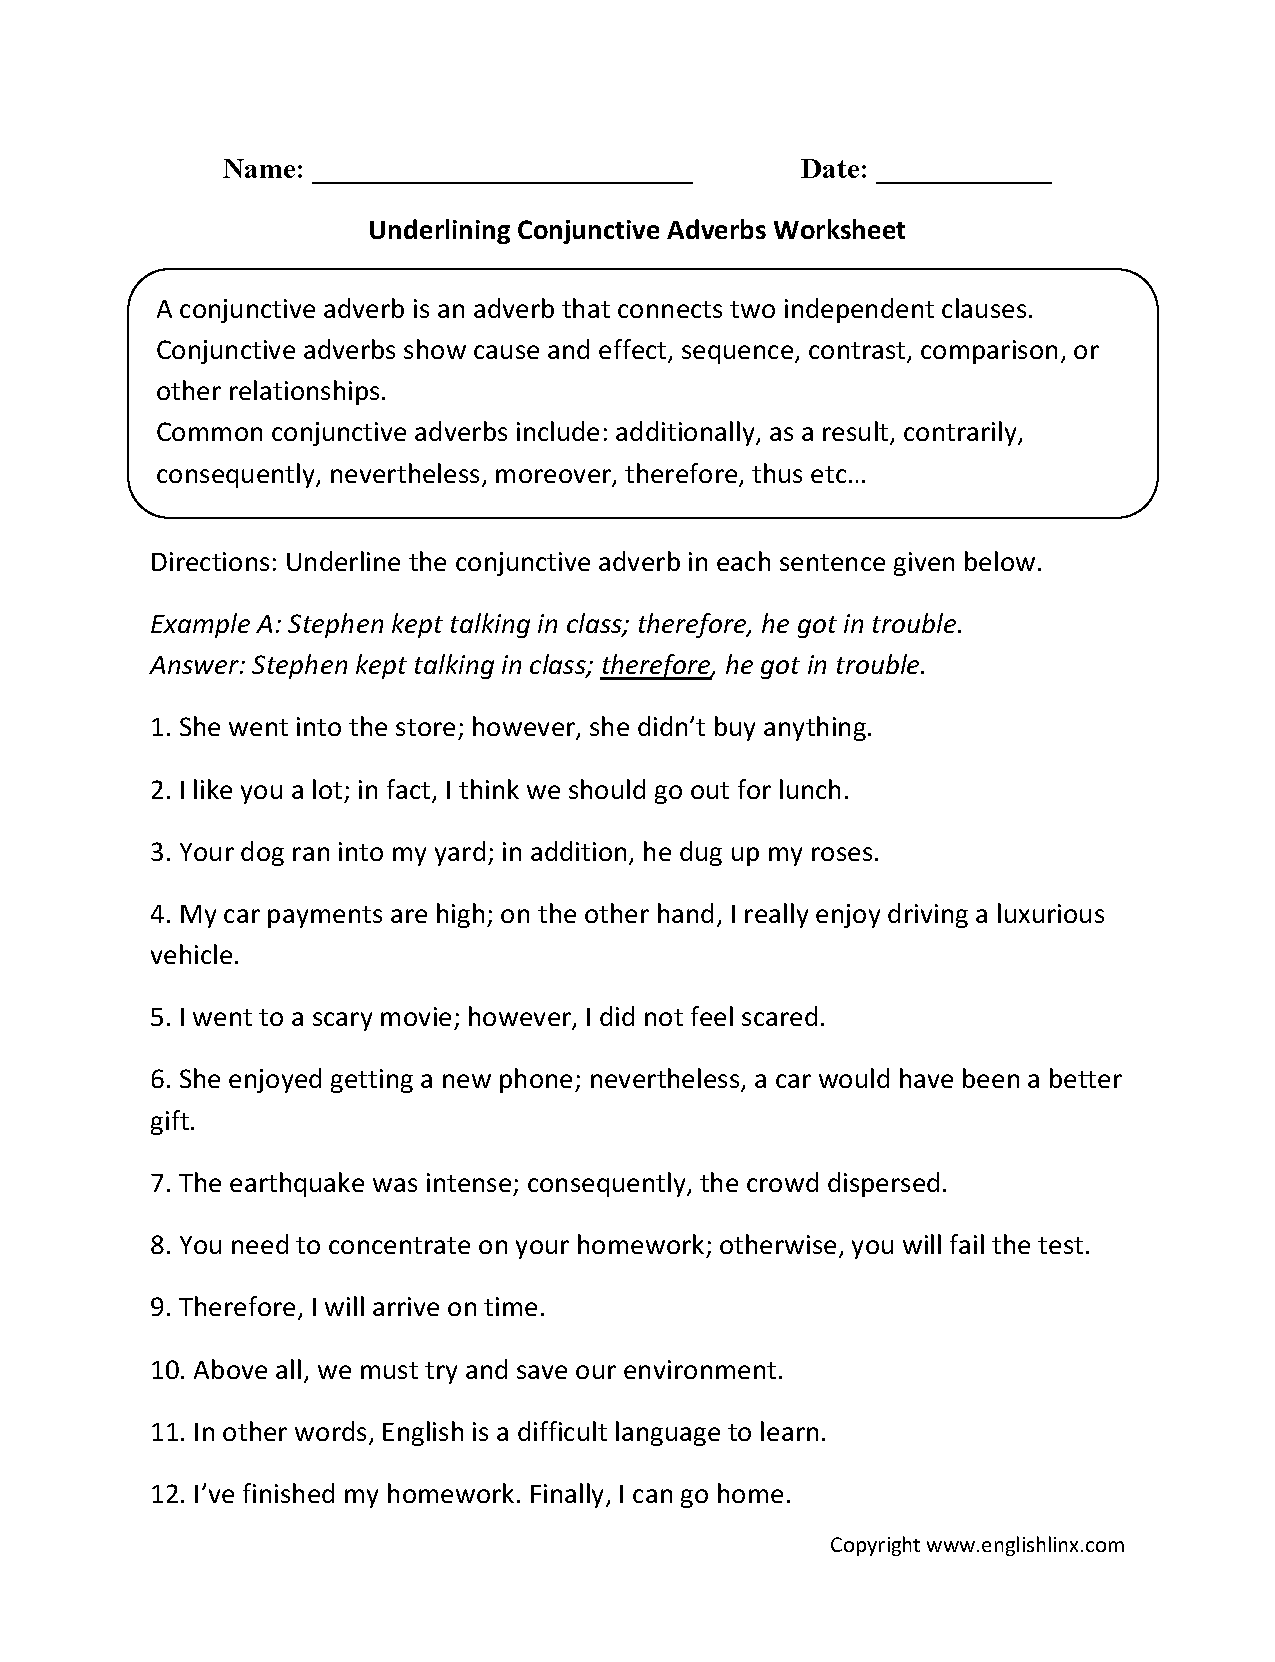 Aldiablosus  Outstanding Englishlinxcom  Conjunctions Worksheets With Gorgeous Worksheet With Delightful English Grammar Worksheets For Class  Also State Of Being Verbs Worksheets In Addition Handling Data Ks Worksheets And Solving Equations Free Worksheets As Well As Possessive Noun Practice Worksheets Additionally Download Excel Worksheet From Englishlinxcom With Aldiablosus  Gorgeous Englishlinxcom  Conjunctions Worksheets With Delightful Worksheet And Outstanding English Grammar Worksheets For Class  Also State Of Being Verbs Worksheets In Addition Handling Data Ks Worksheets From Englishlinxcom